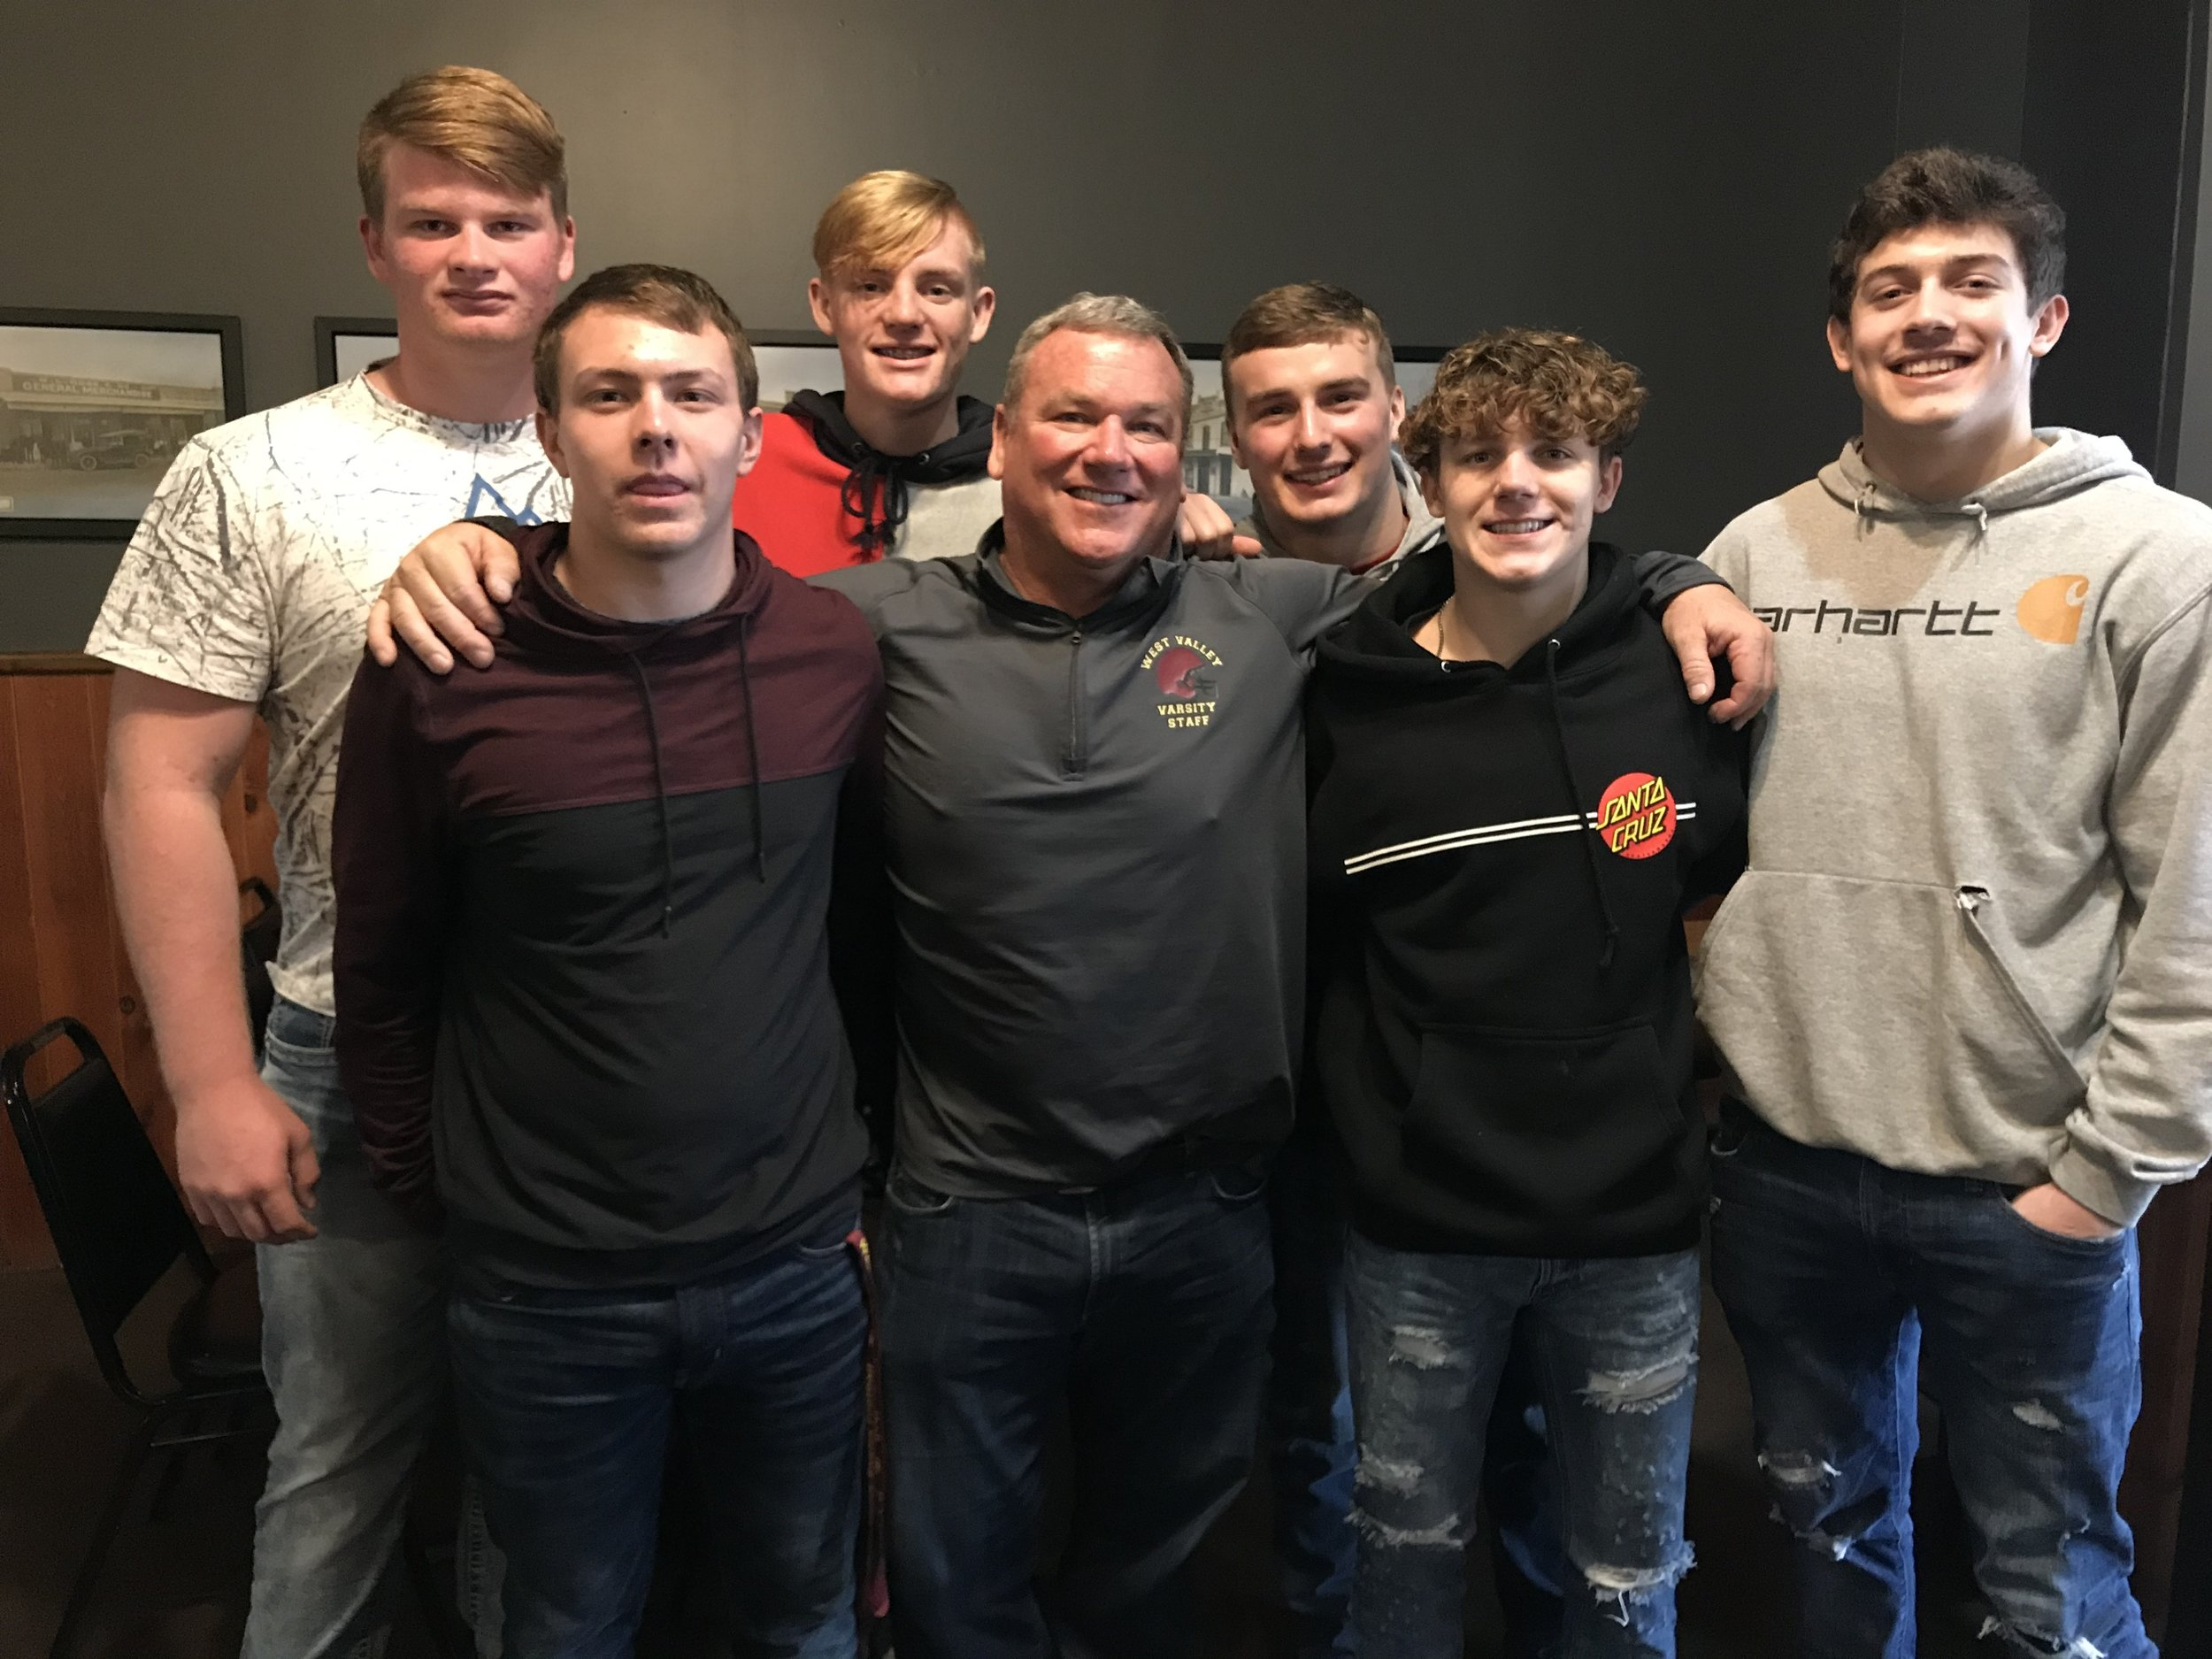 West Valley High School Head Varsity Football Coach, Greg Grandell, with members of the North Section CIF Division III Football Championship team.  Back row: Logan Gonzalez, Jacob Best, Cade Lambert  Front row: Garett Thibodeau, Greg Grandell, Myles Gibbons, Brock Taylor